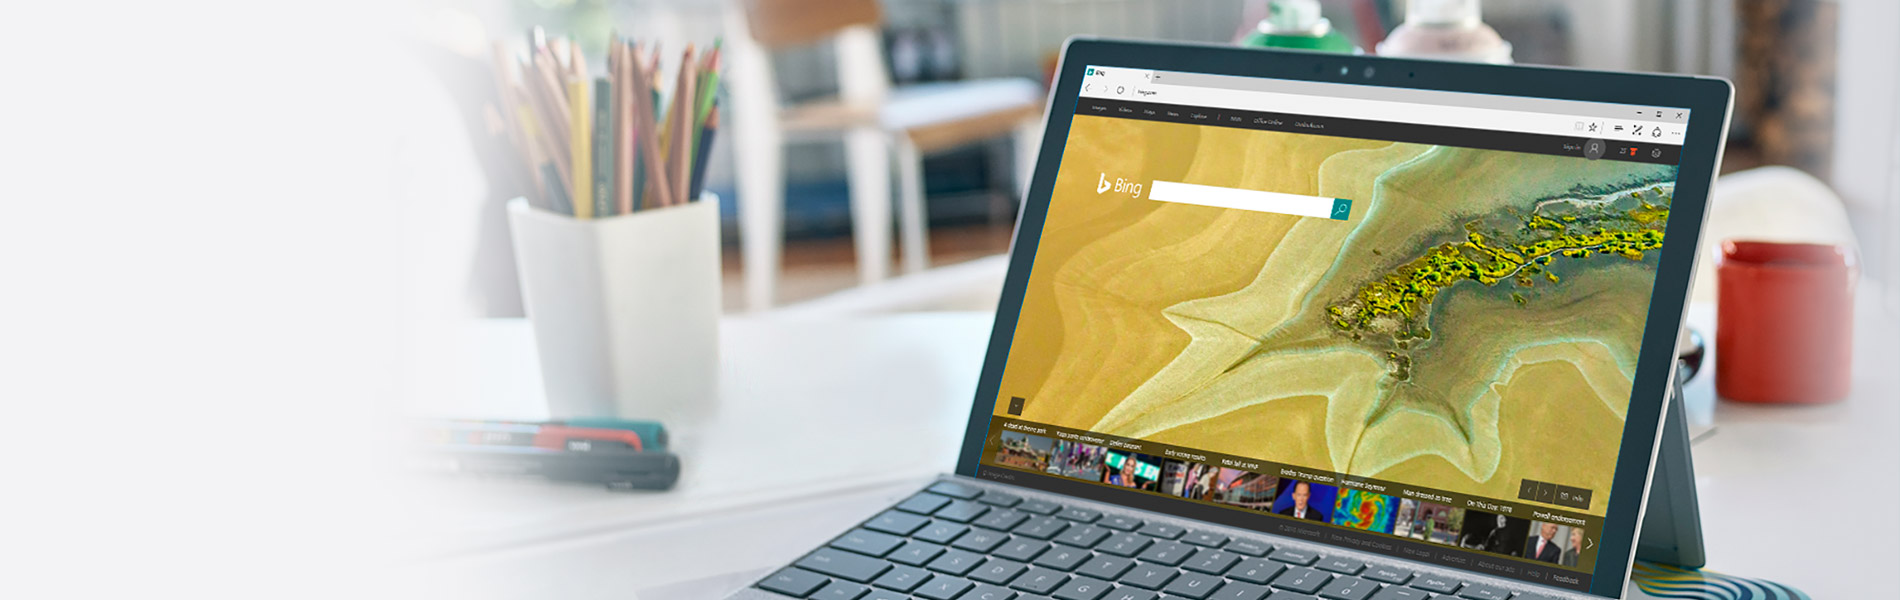 Image of a Surface tablet on a table with the Bing search engine on the screen